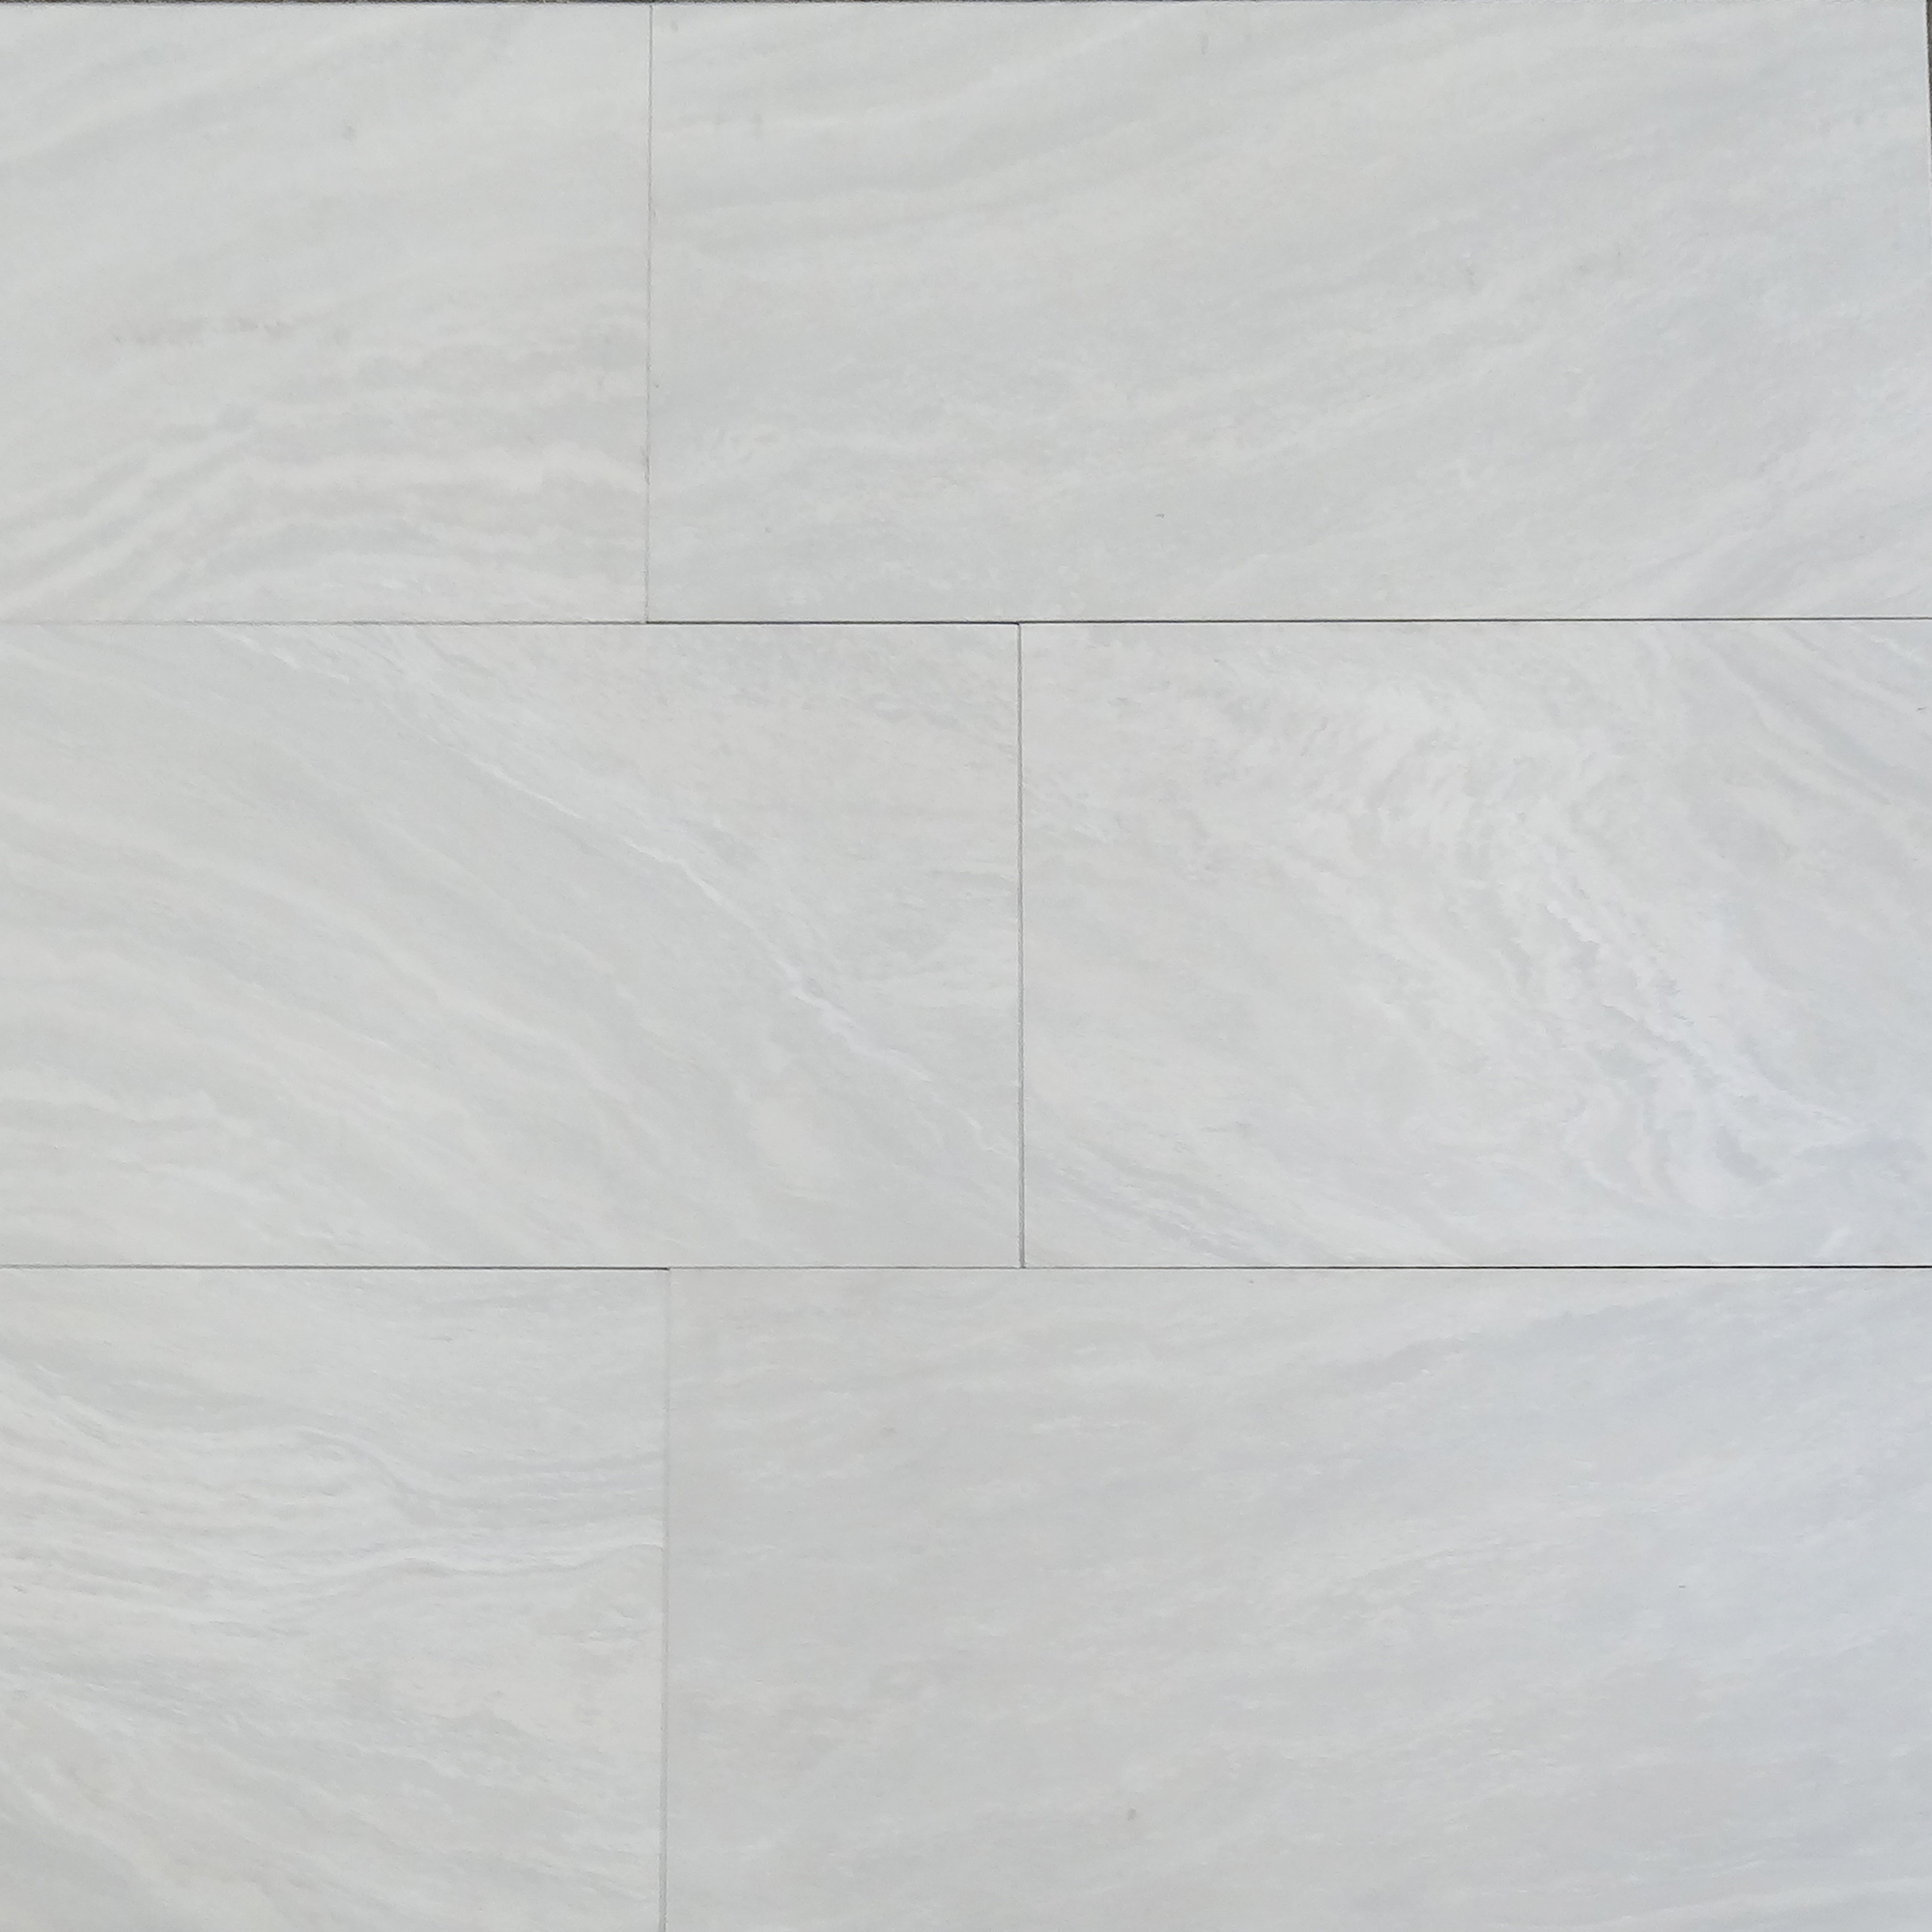 Euromarmo Travertine Silver 12x24 Honed